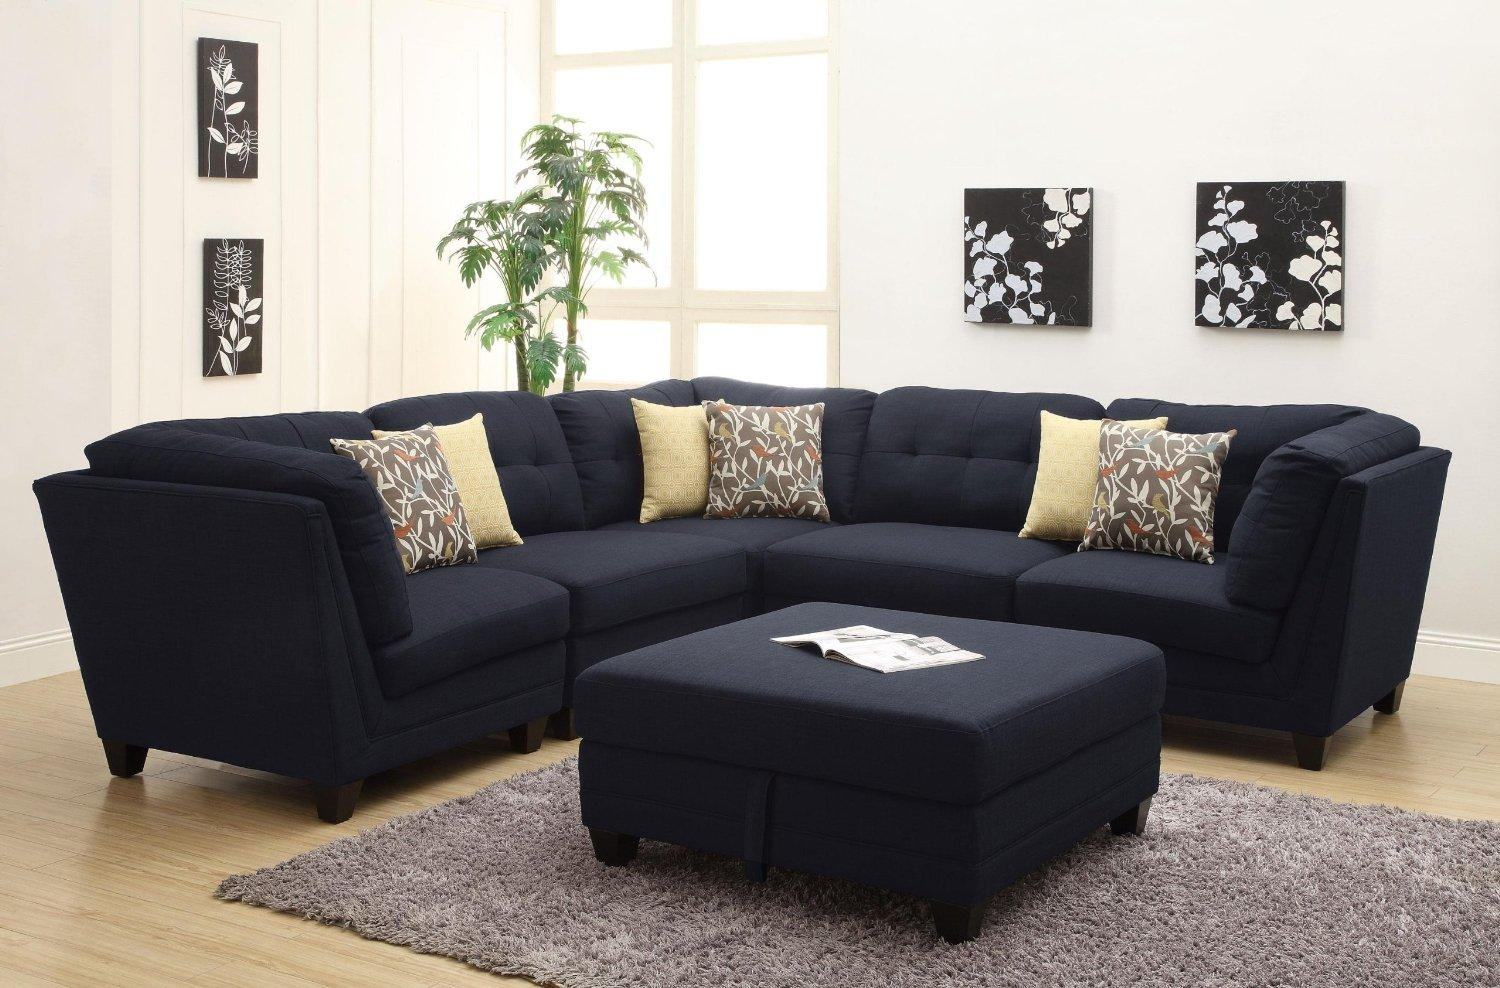 Sofas Center : Most Comfortable Sofas And Chairs 2015Most Throughout Comfortable Sofas And Chairs (Image 17 of 20)